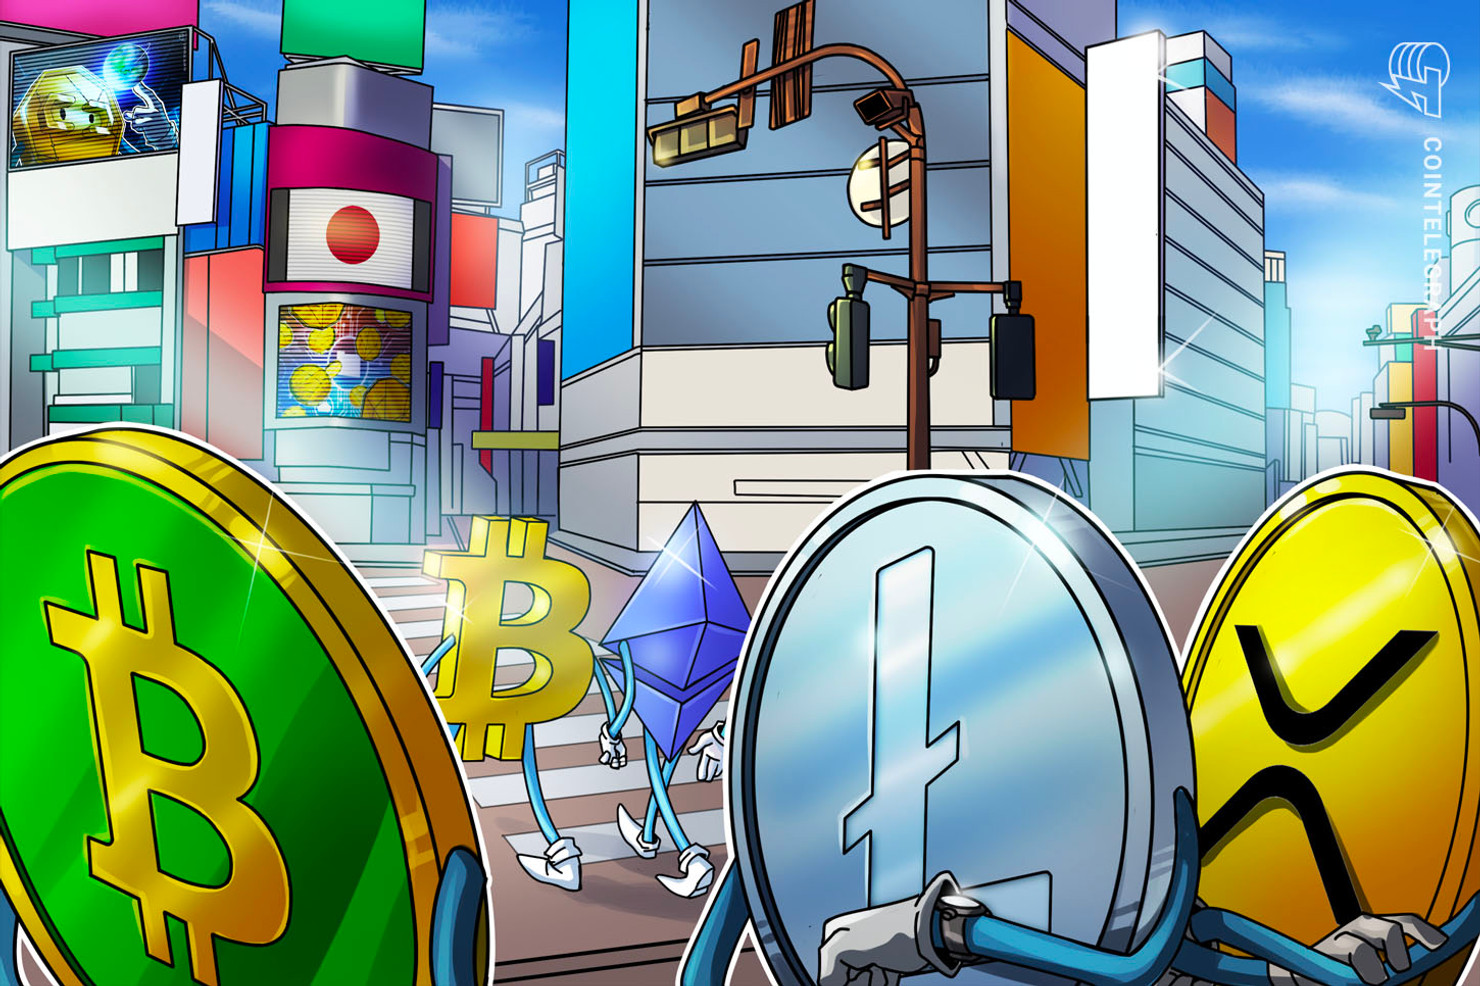 Japan the Next Country to Mint a Digital Currency?